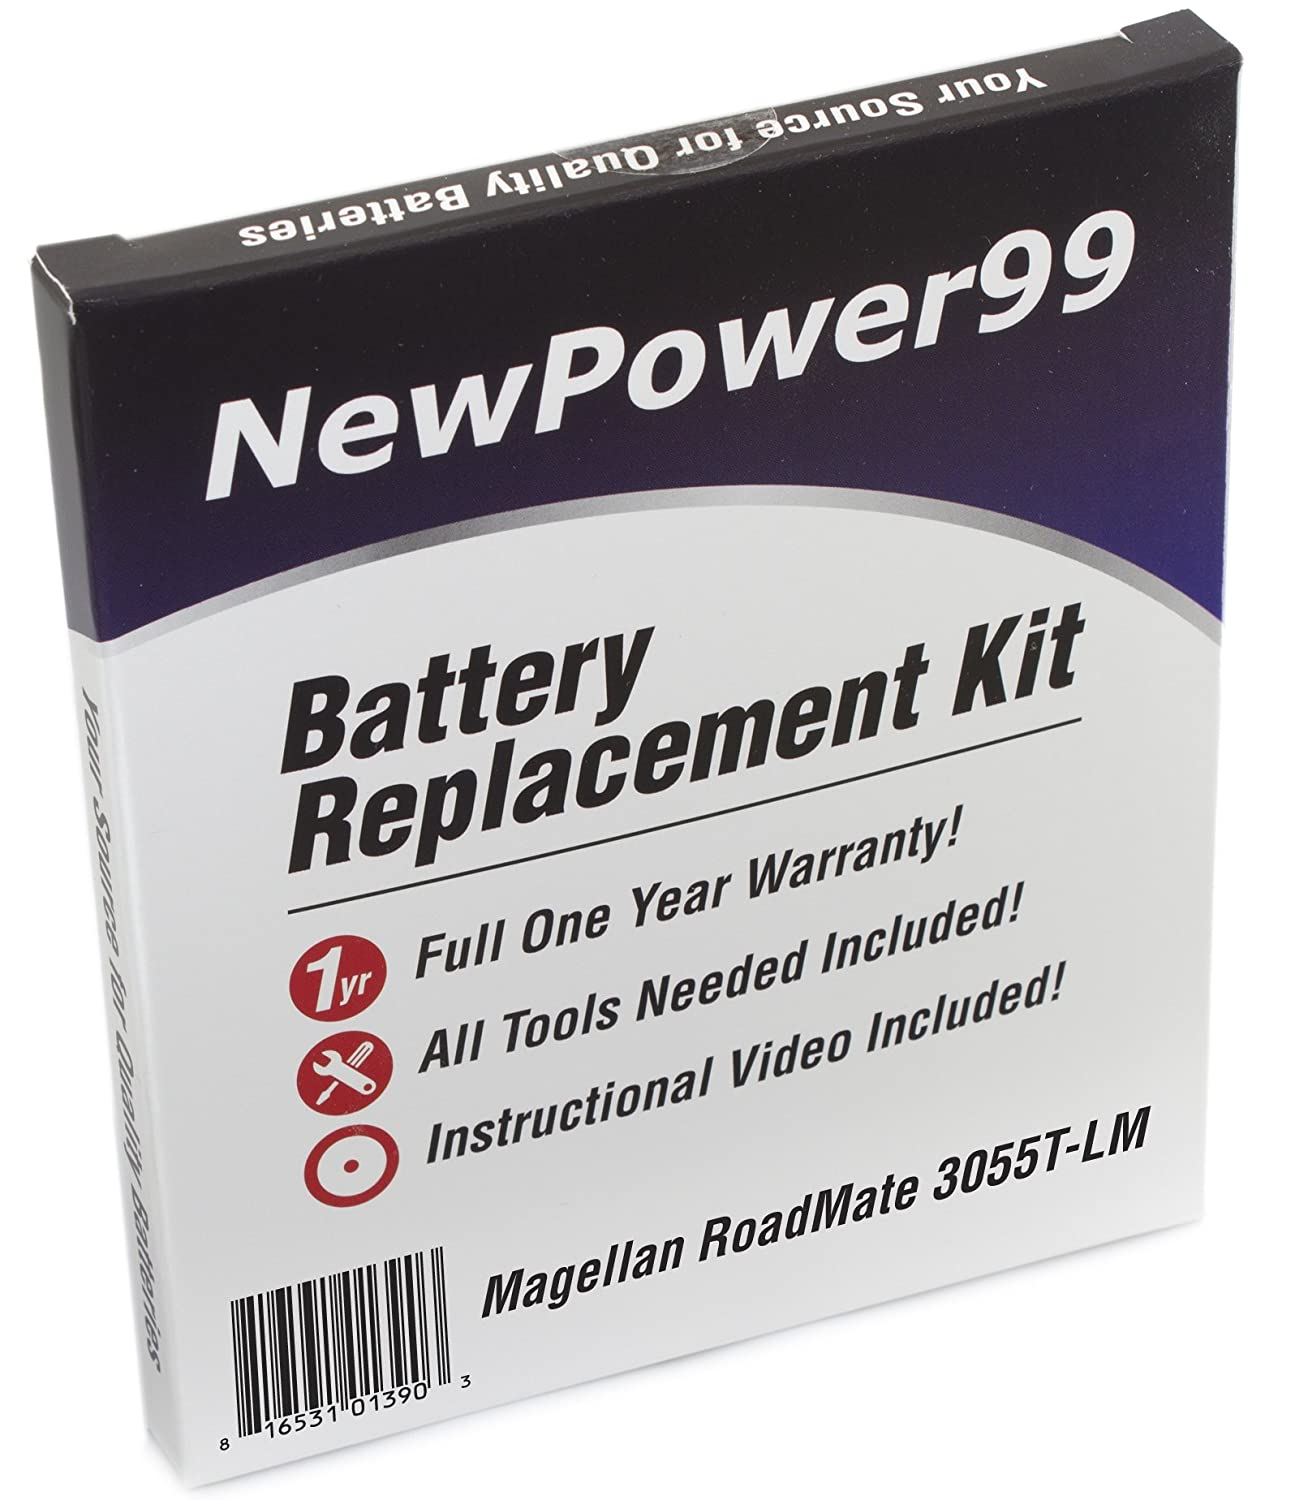 NewPower99 Battery Replacement Kit with Battery, Video Instructions and Tools for Magellan RoadMate 3055T-LM